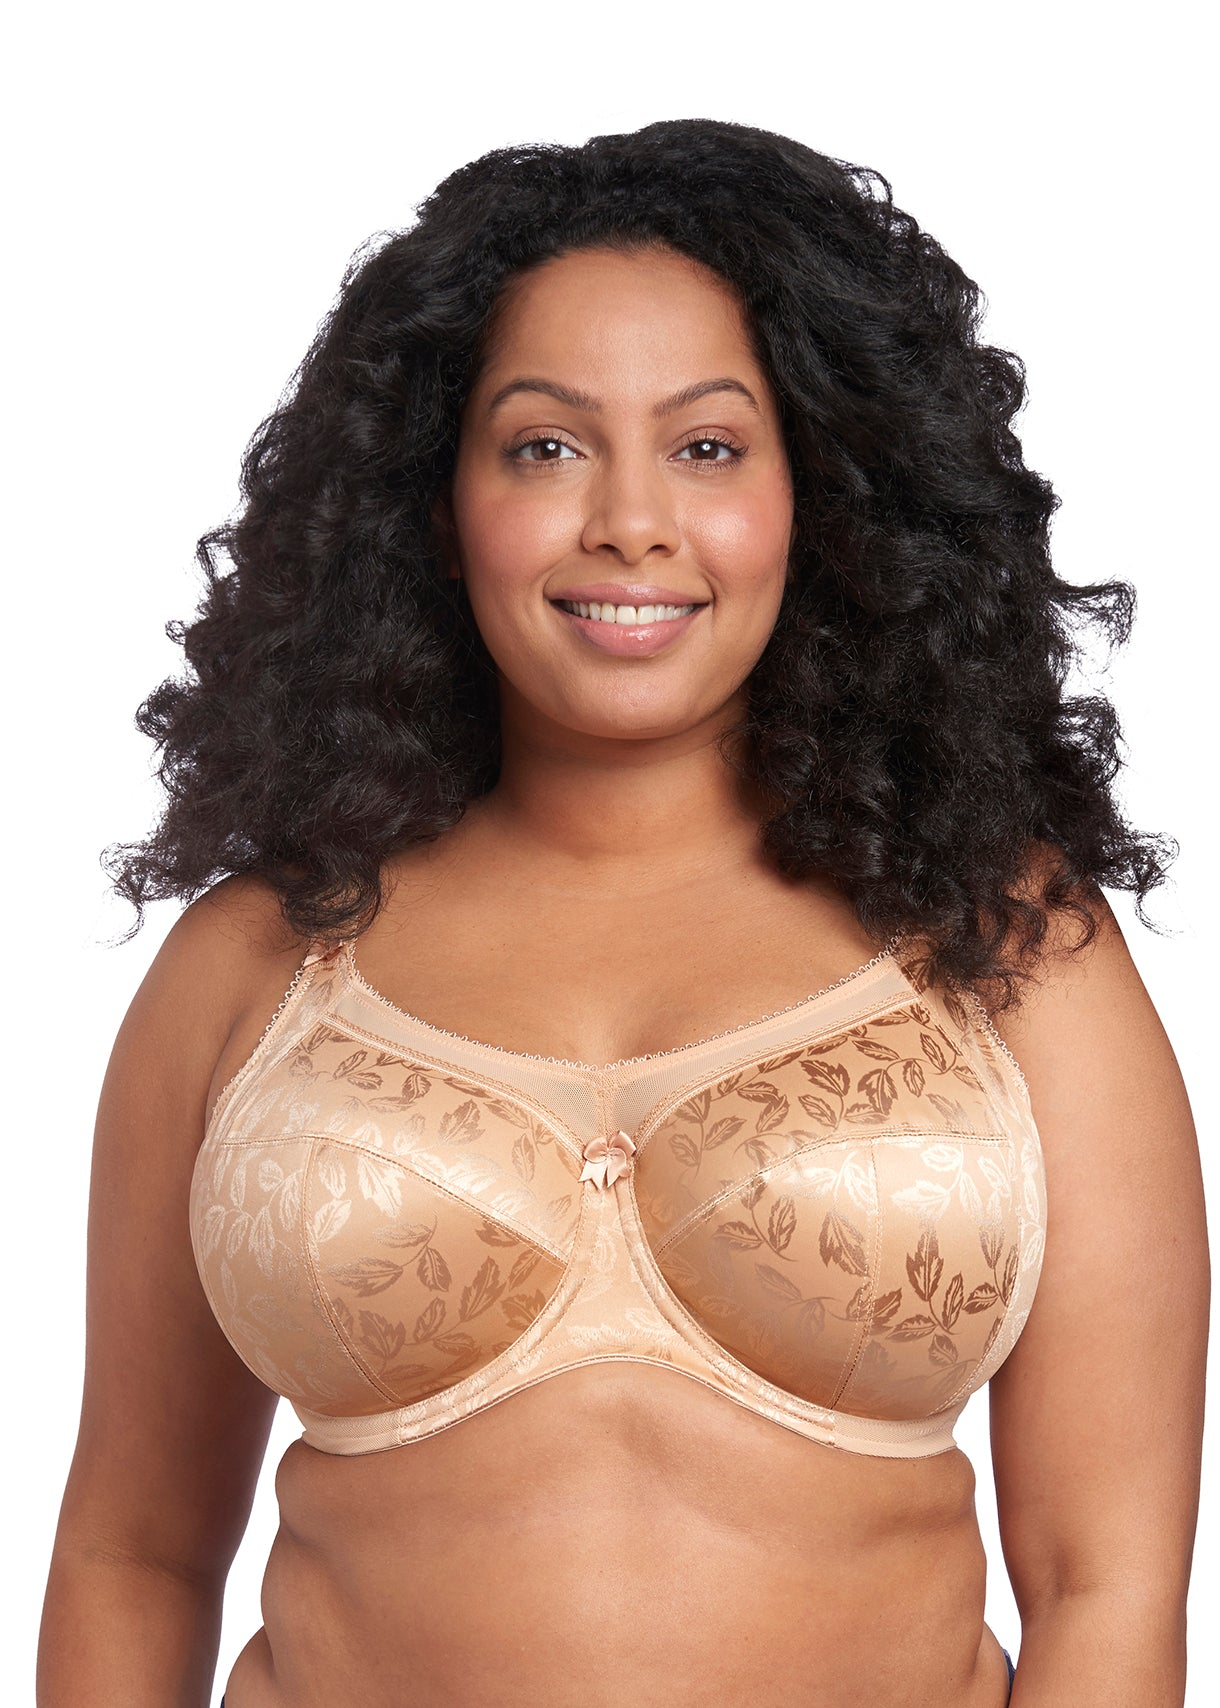 Goddess Petra Underwired Full Cup Bra 6651 New Womens Supportive Lingerie